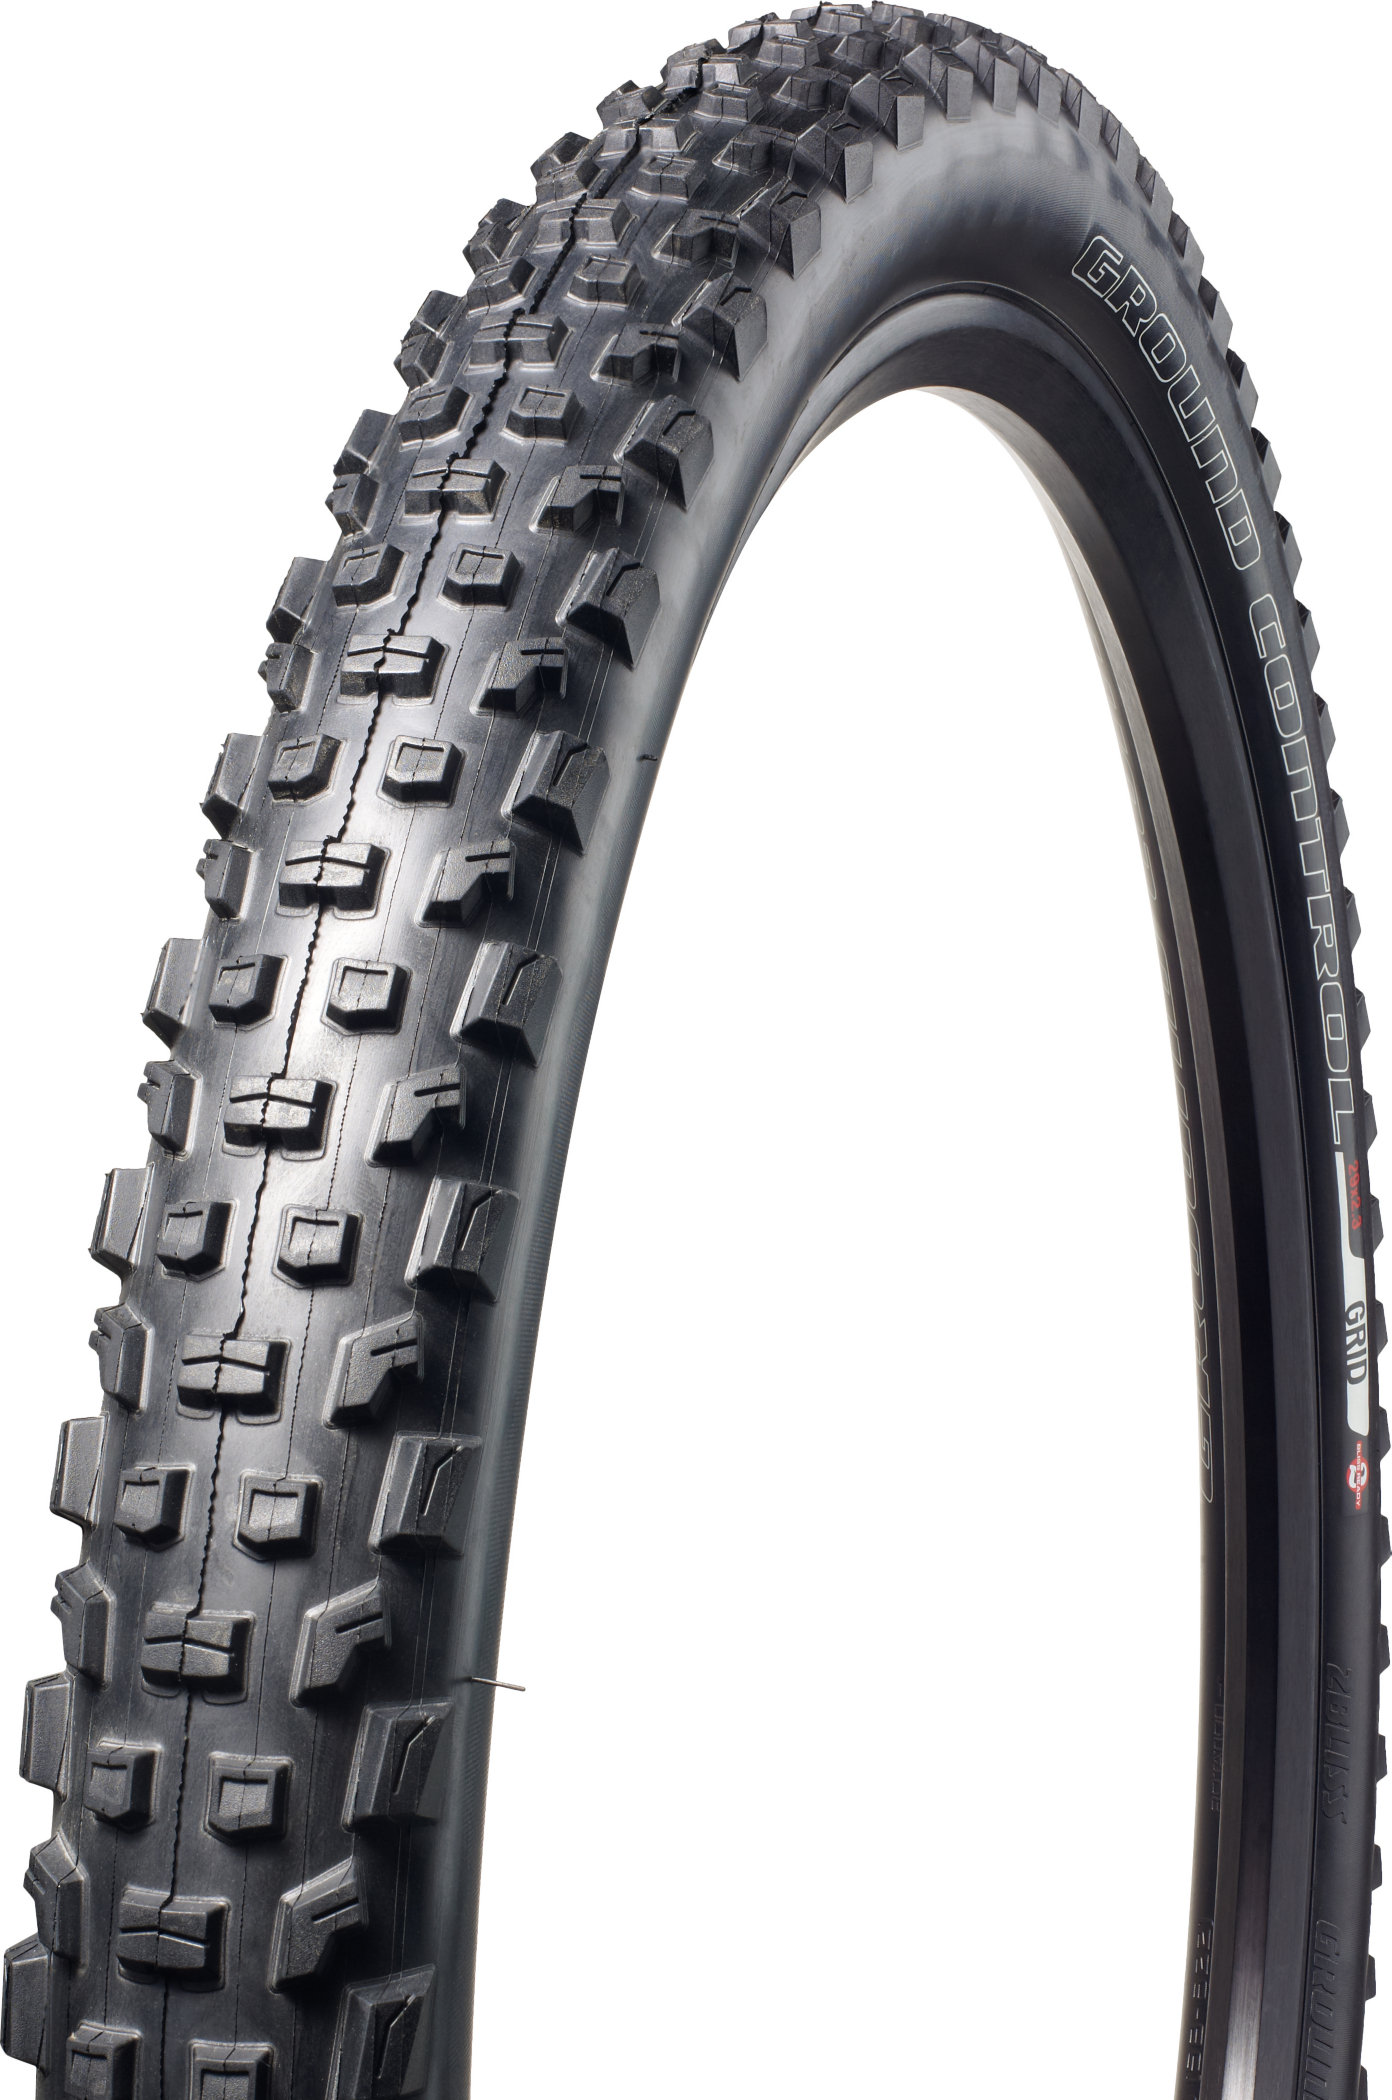 SPECIALIZED SW GROUND CONTROL 2BR TIRE 26X2.3 - SPECIALIZED SW GROUND CONTROL 2BR TIRE 26X2.3